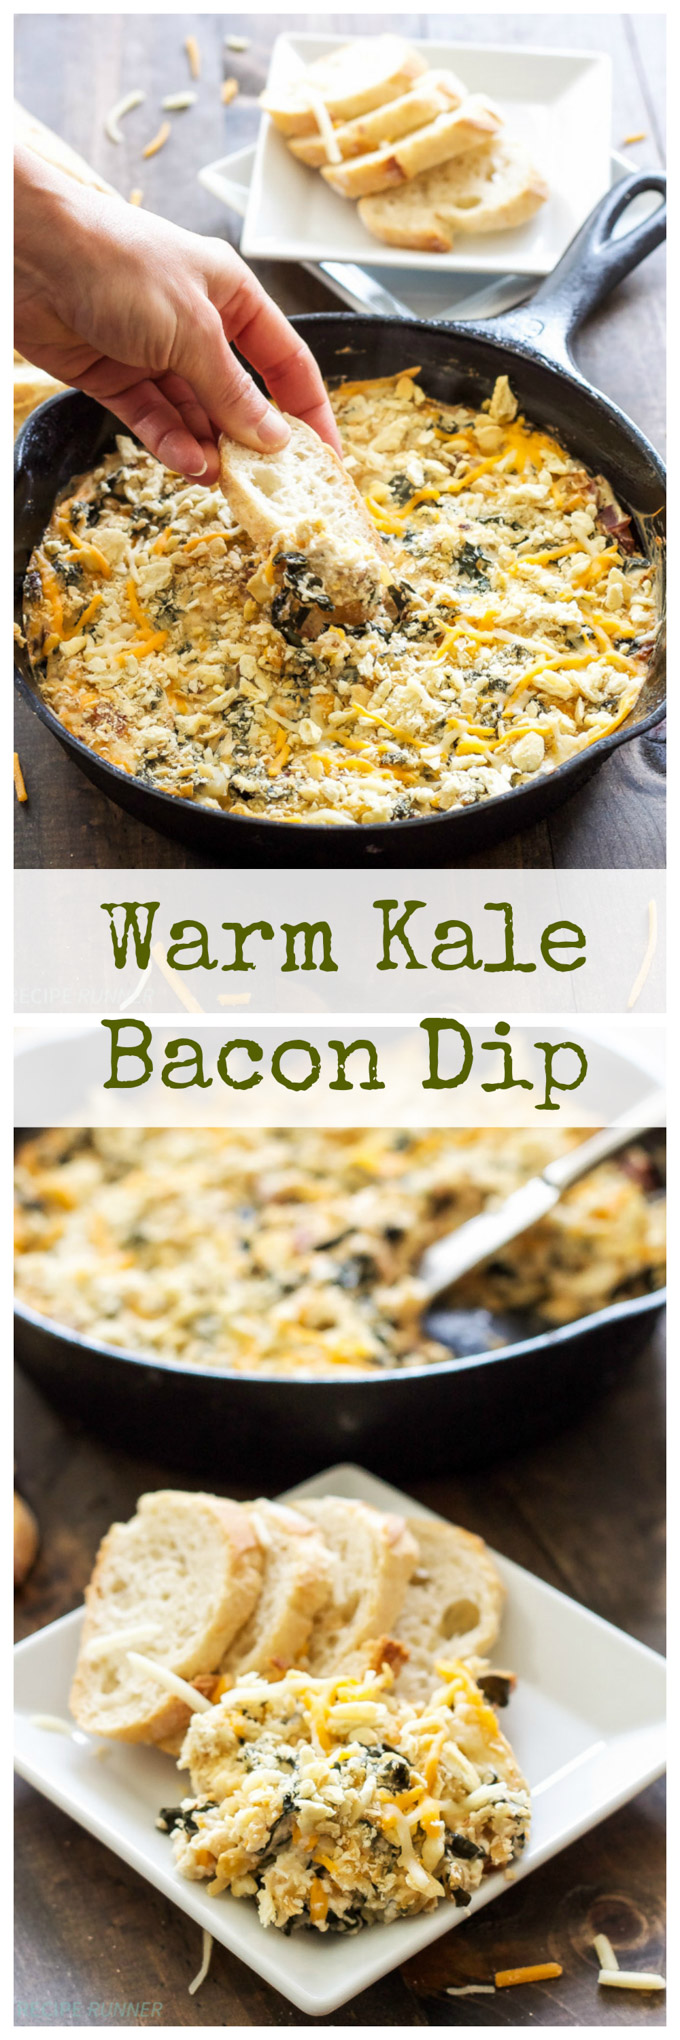 Warm Kale Bacon Dip | If you love cheese you will love this warm, cheesy, creamy kale bacon dip! #ChoppedAtHome #ad